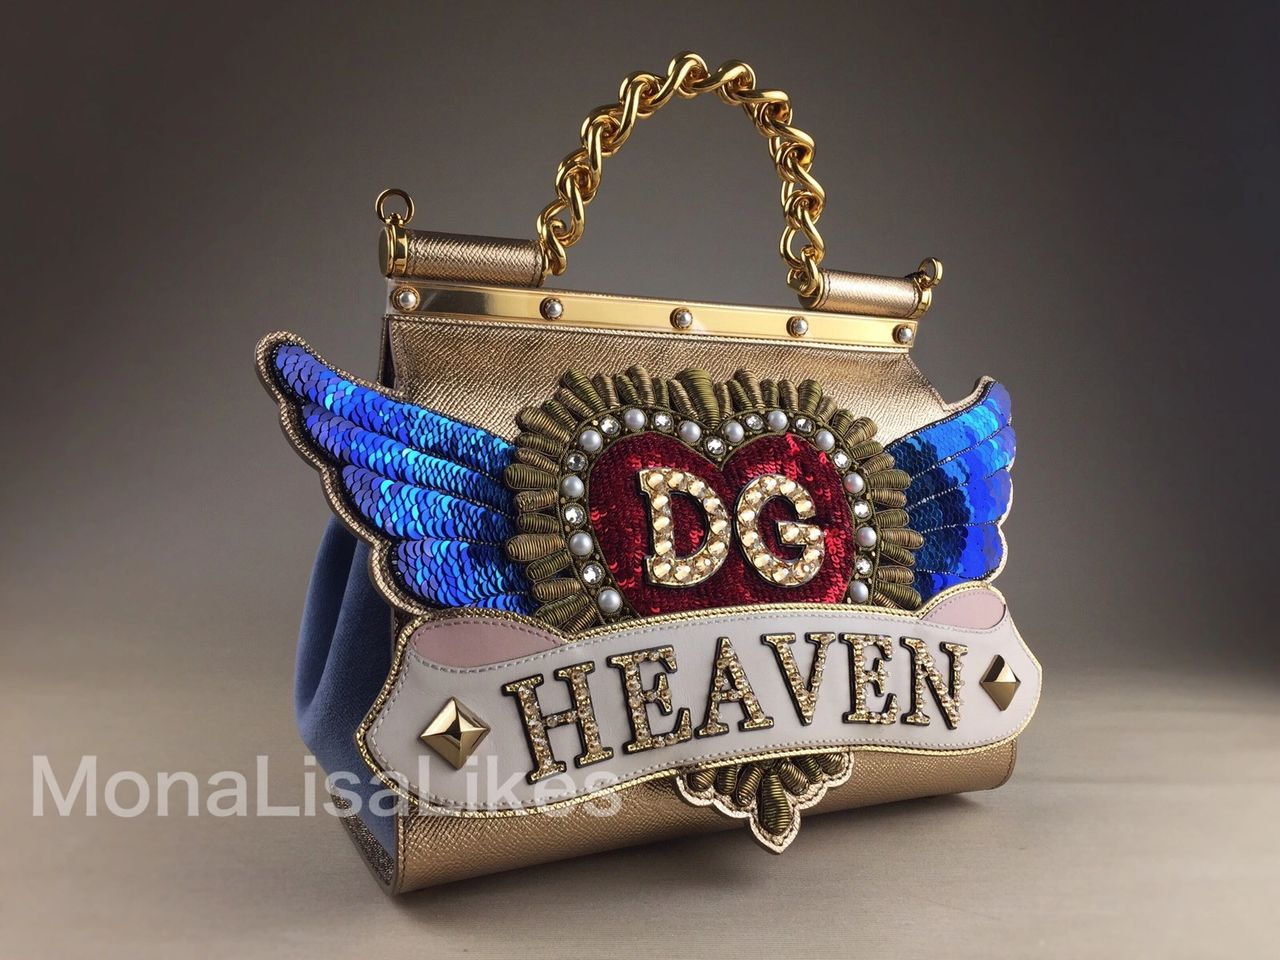 DOLCE & GABBANA Miss Sicily DG Heaven bag fom Fall-Winter 2018-2019 Collection